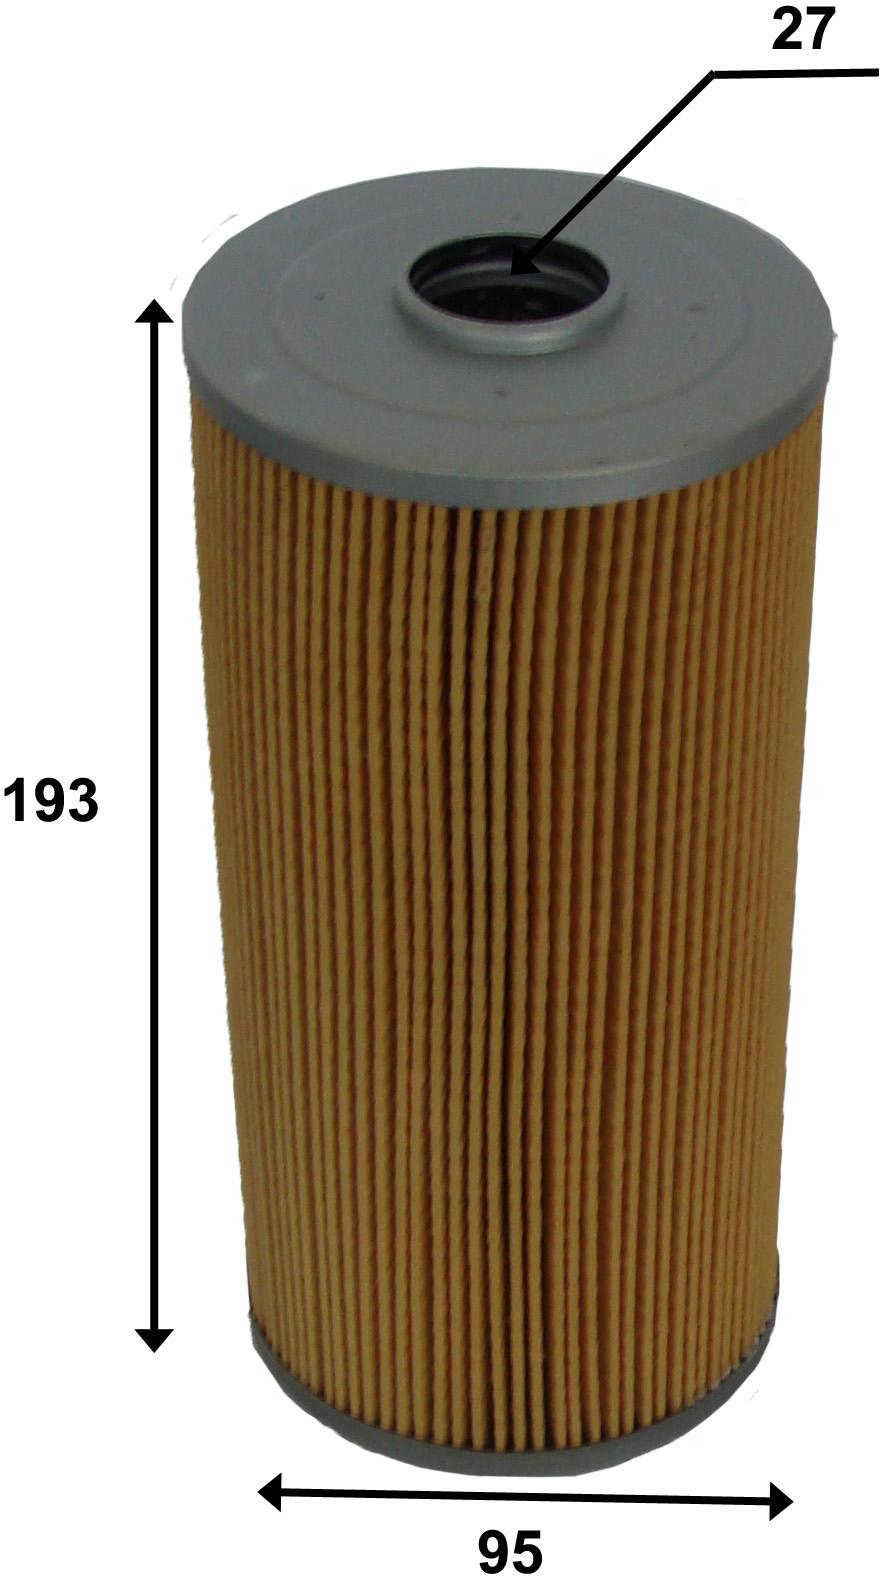 Fe0031 Fuel Filter Hino R2692p Ryco R2592 20a1922 Azumi Fe26031 Fleetguard Filters For Diesel Shopping Cart Software By Ashop